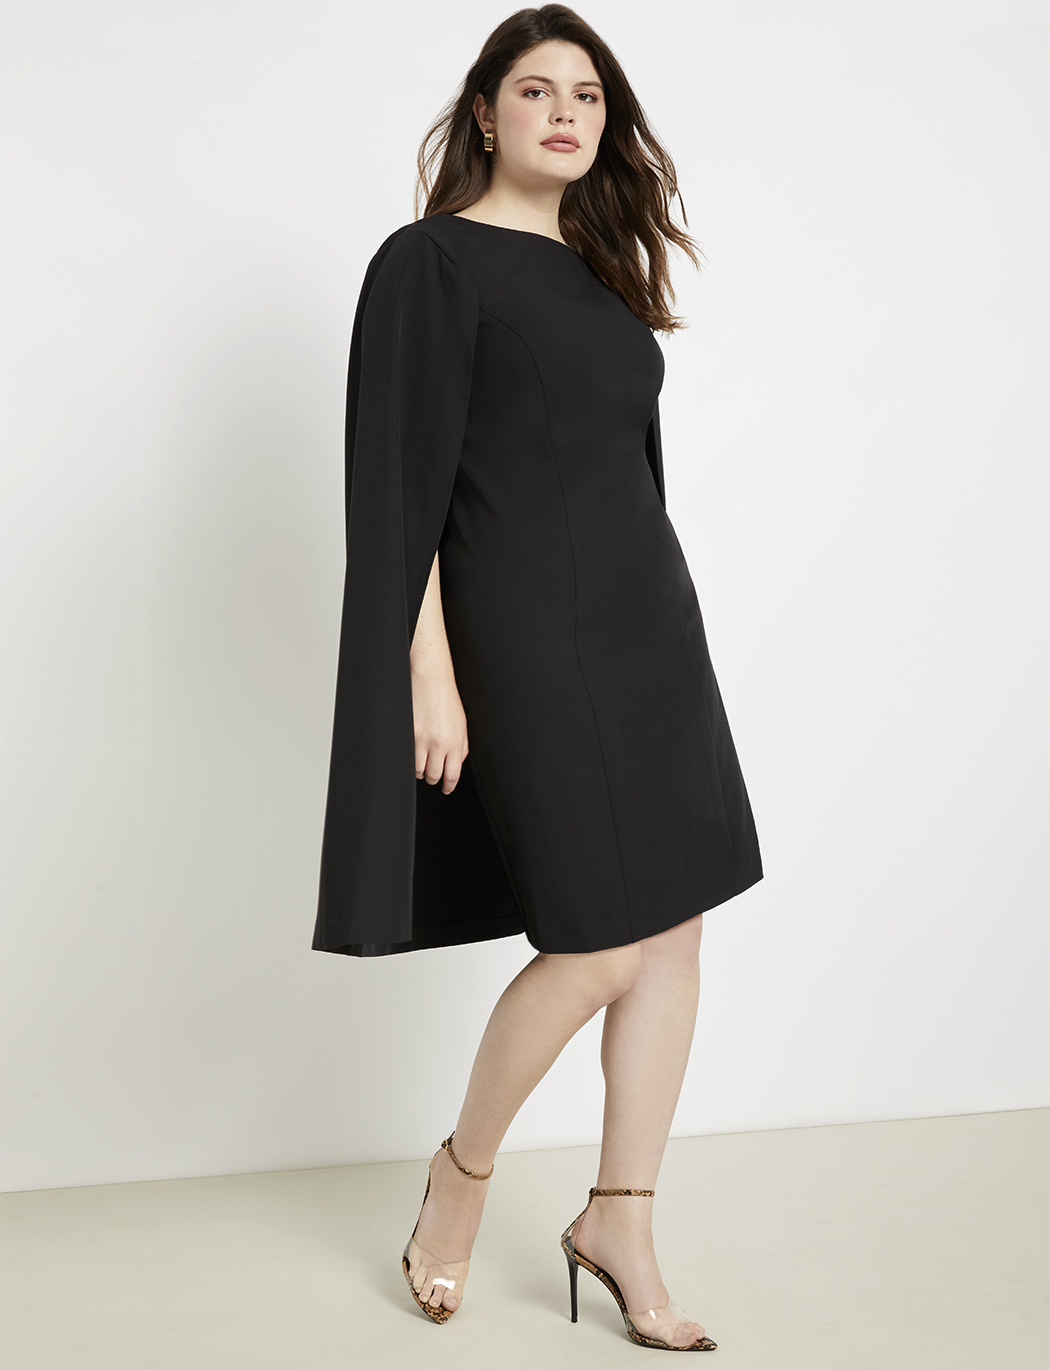 Cape Dress | Women\'s Plus Size Dresses | ELOQUII